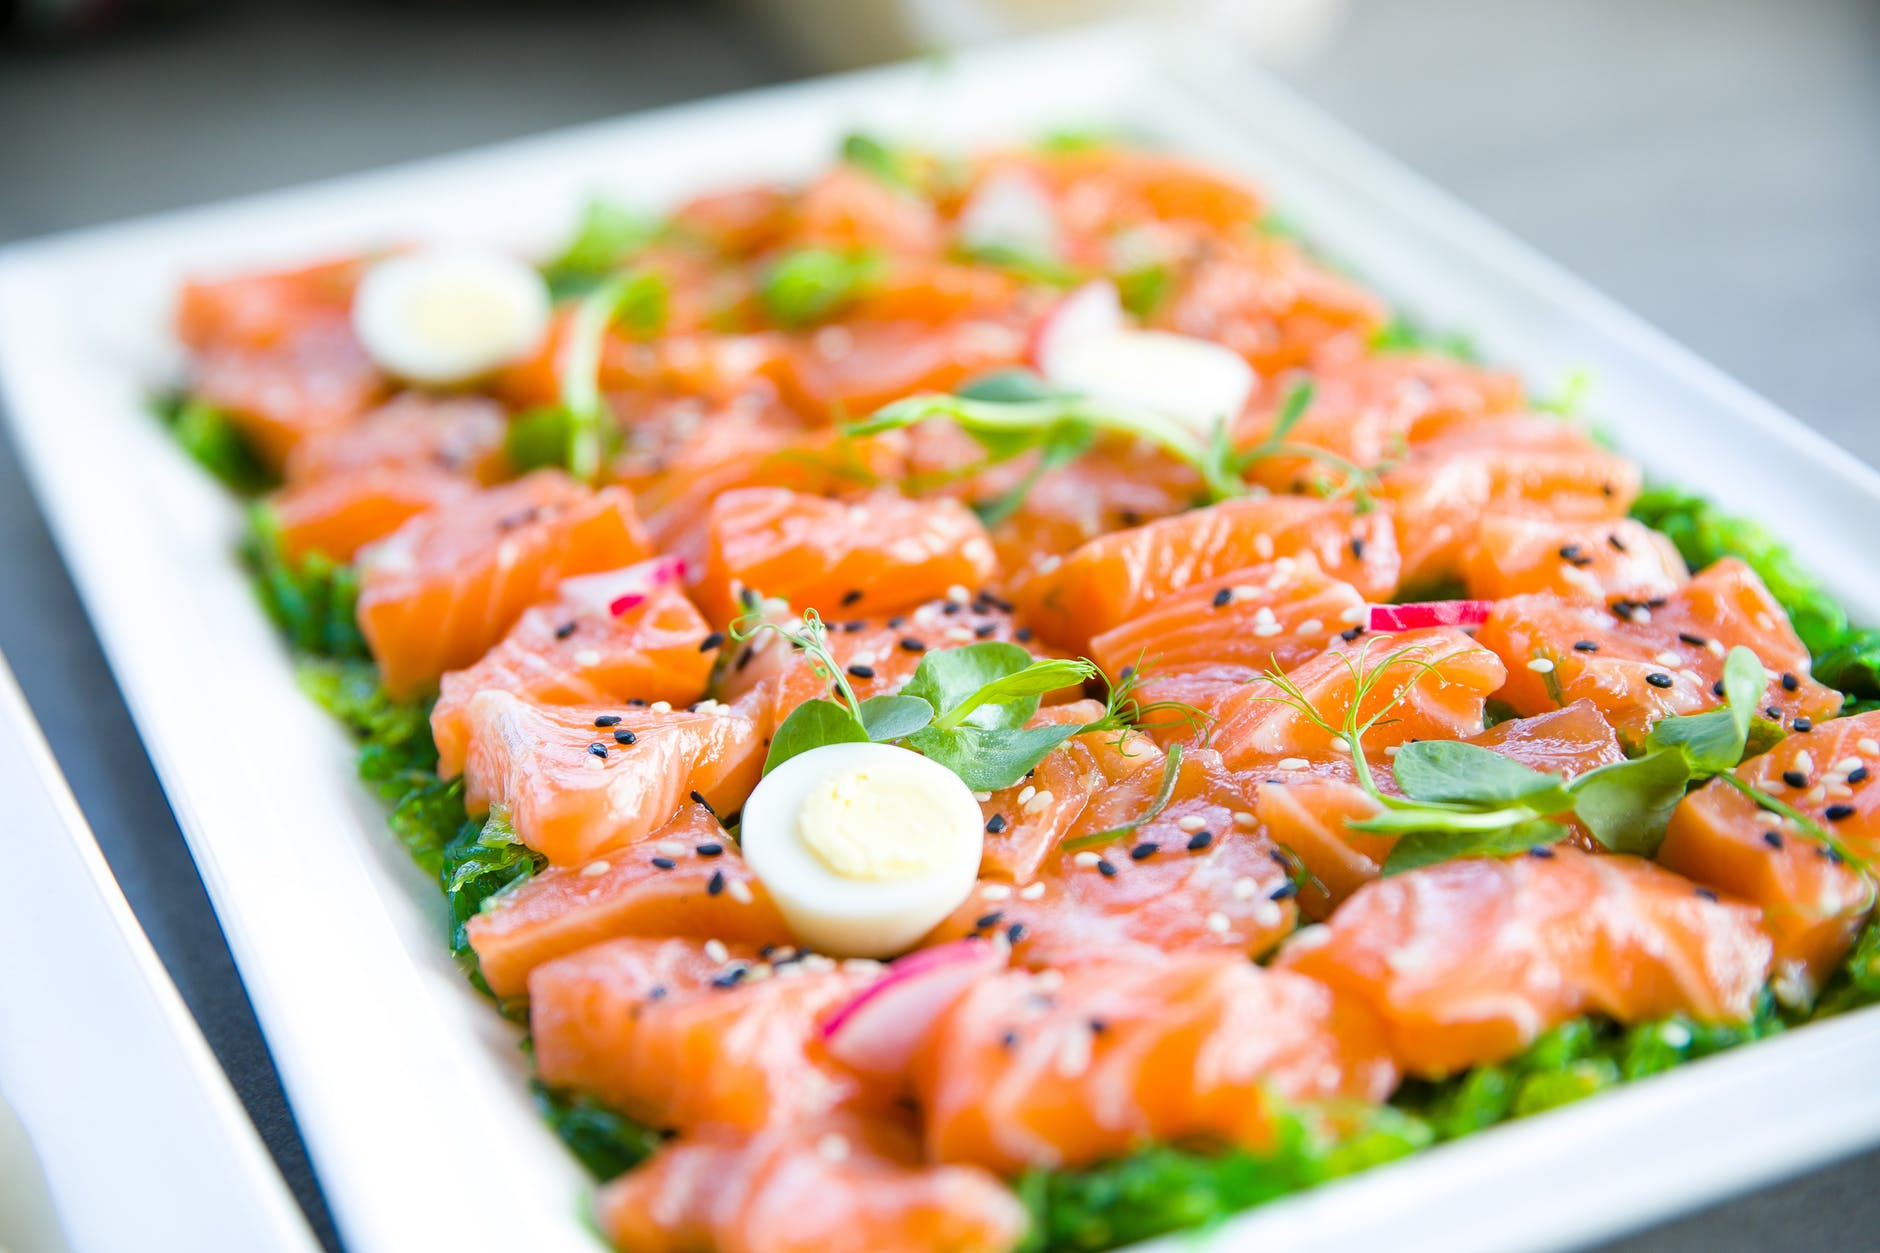 salmon with greens and quail eggs on banquet table